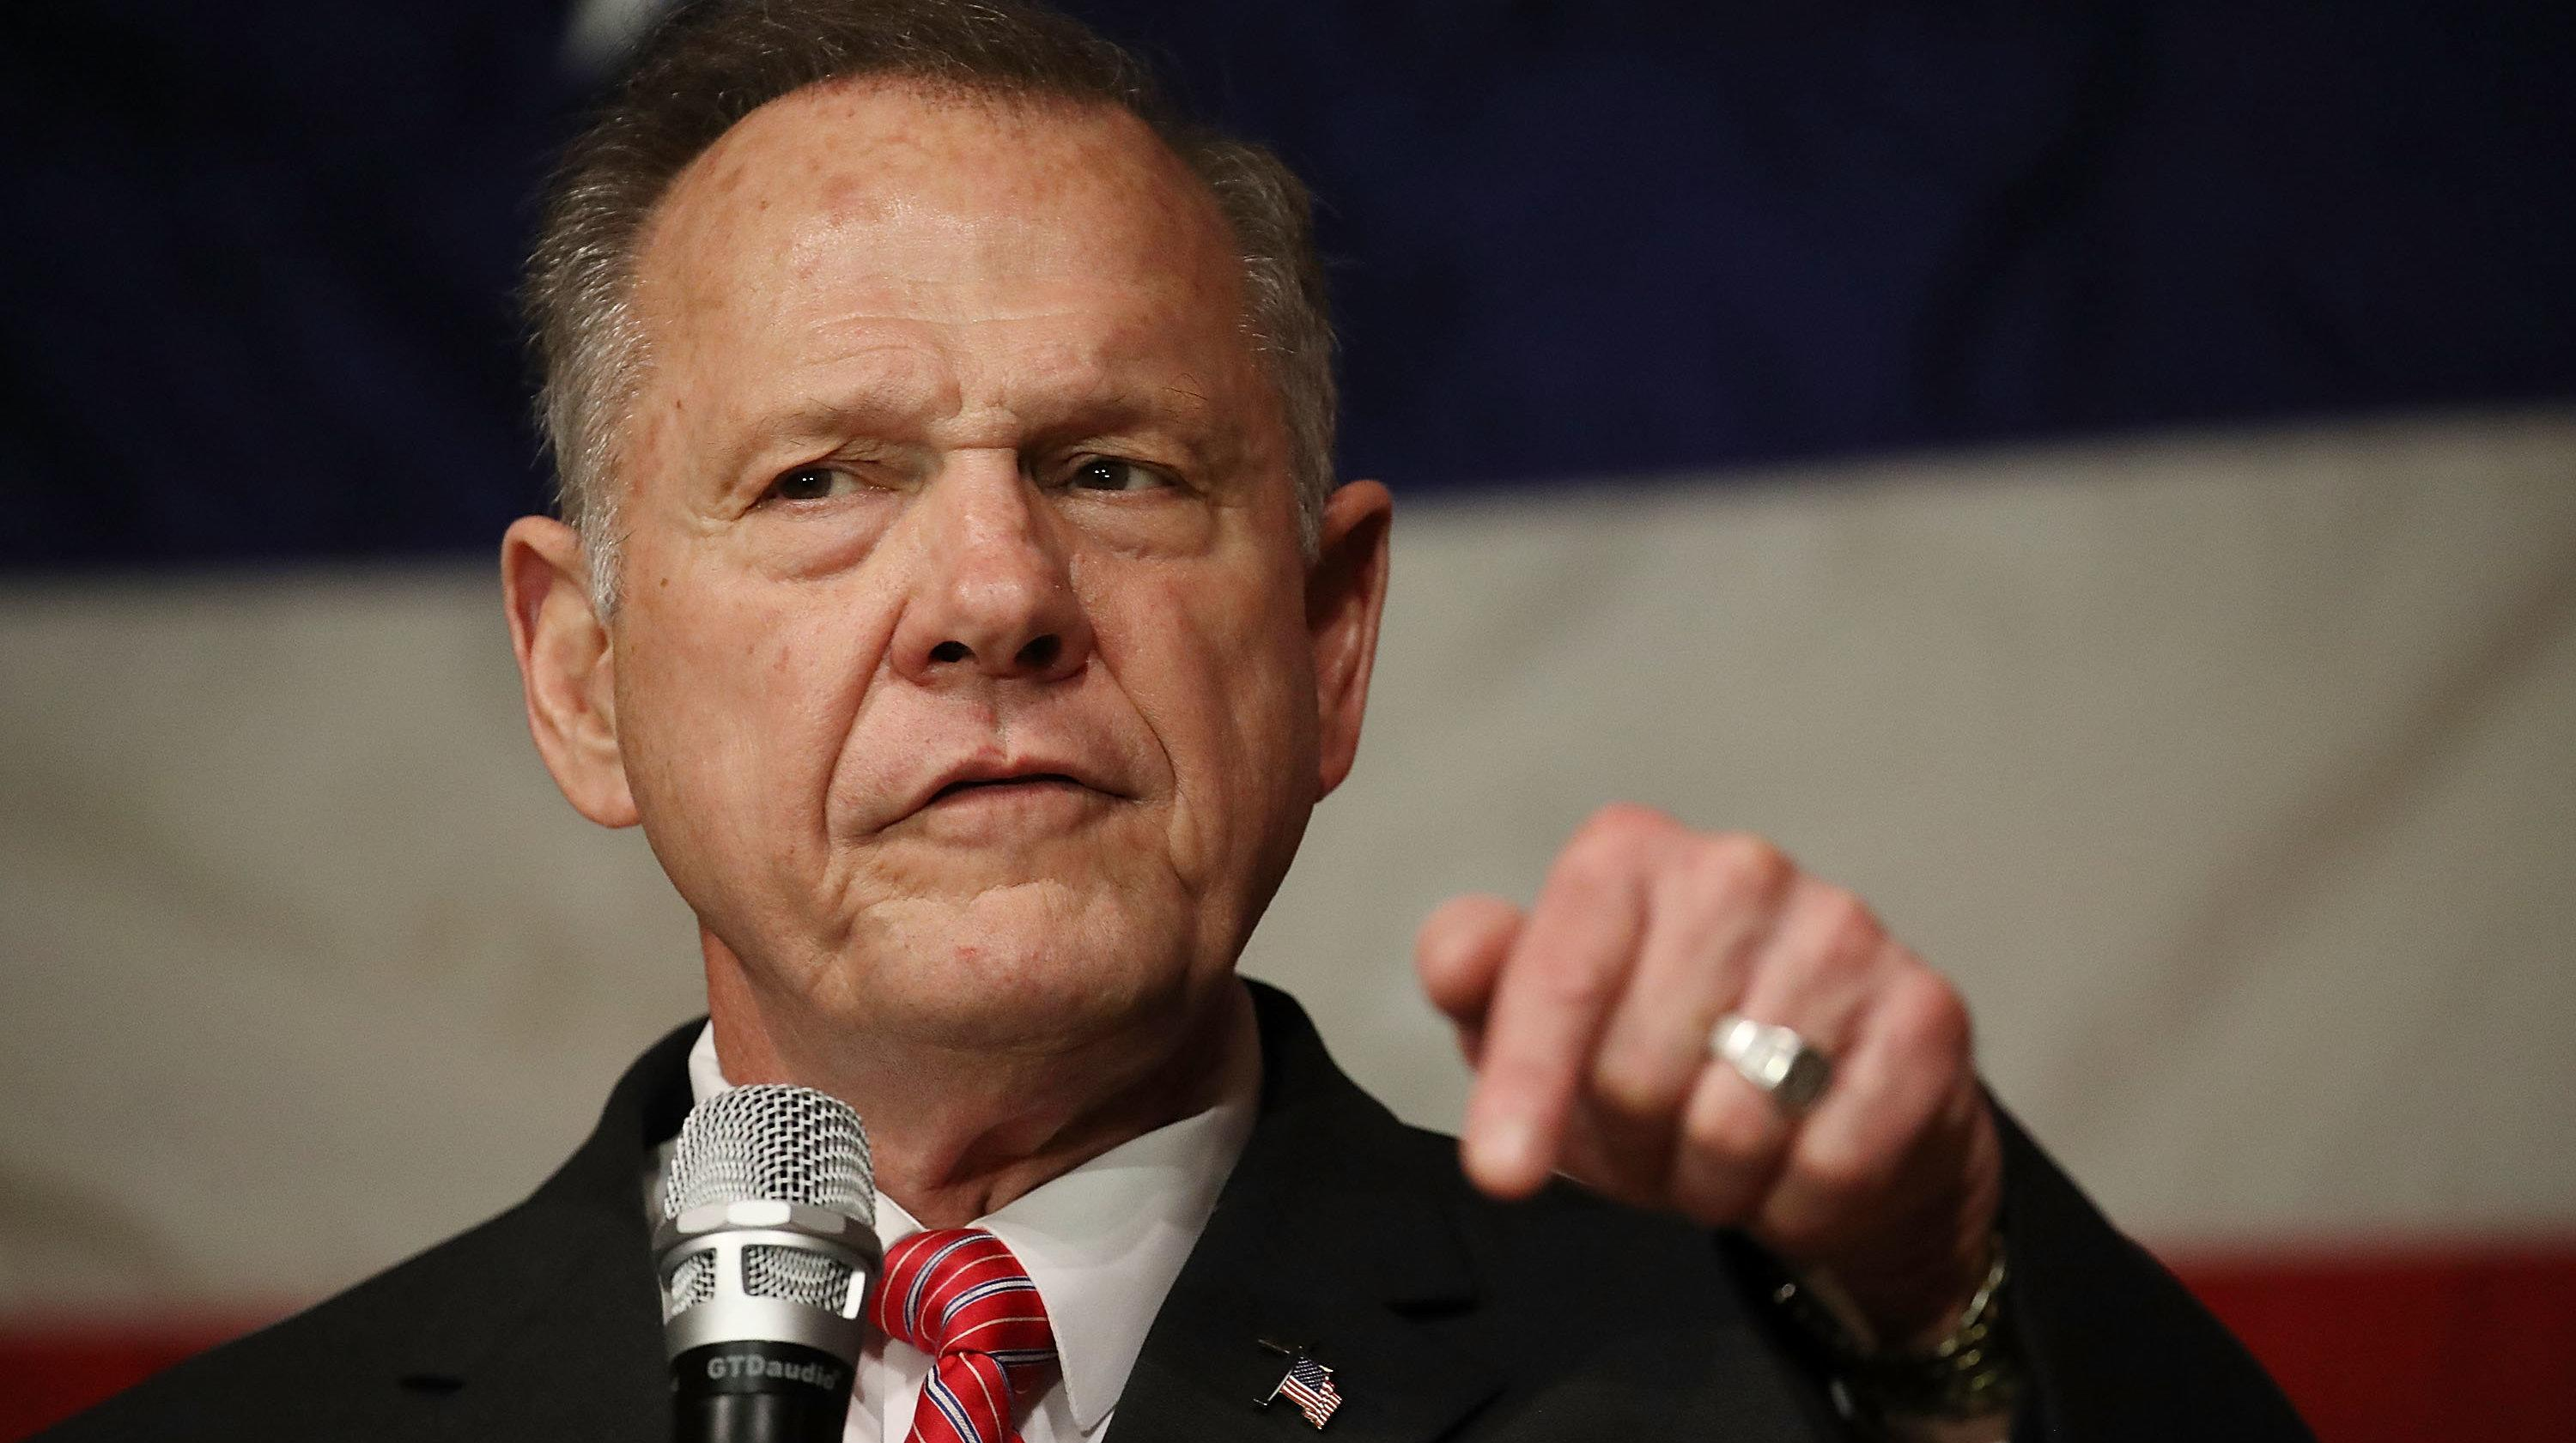 Fox News Corrects Story Claiming Roy Moore Accuser 'Forged' Candidate's Signature